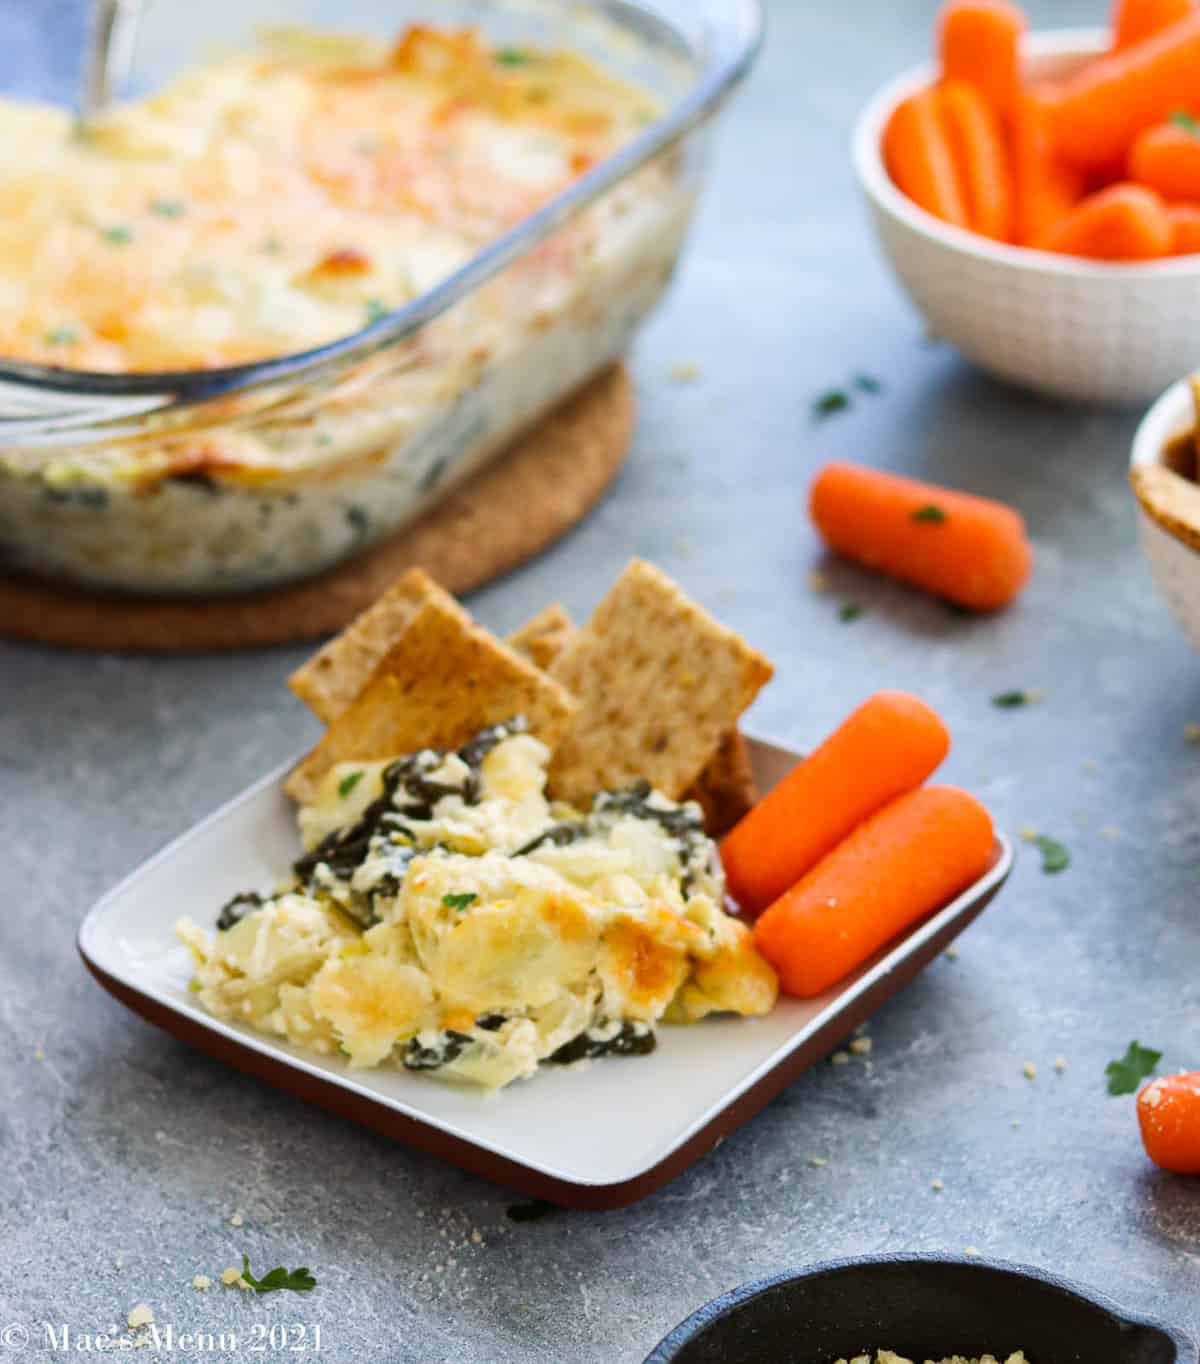 A dish of artichoke dip with crackers and carrots in front of a pan of the dip